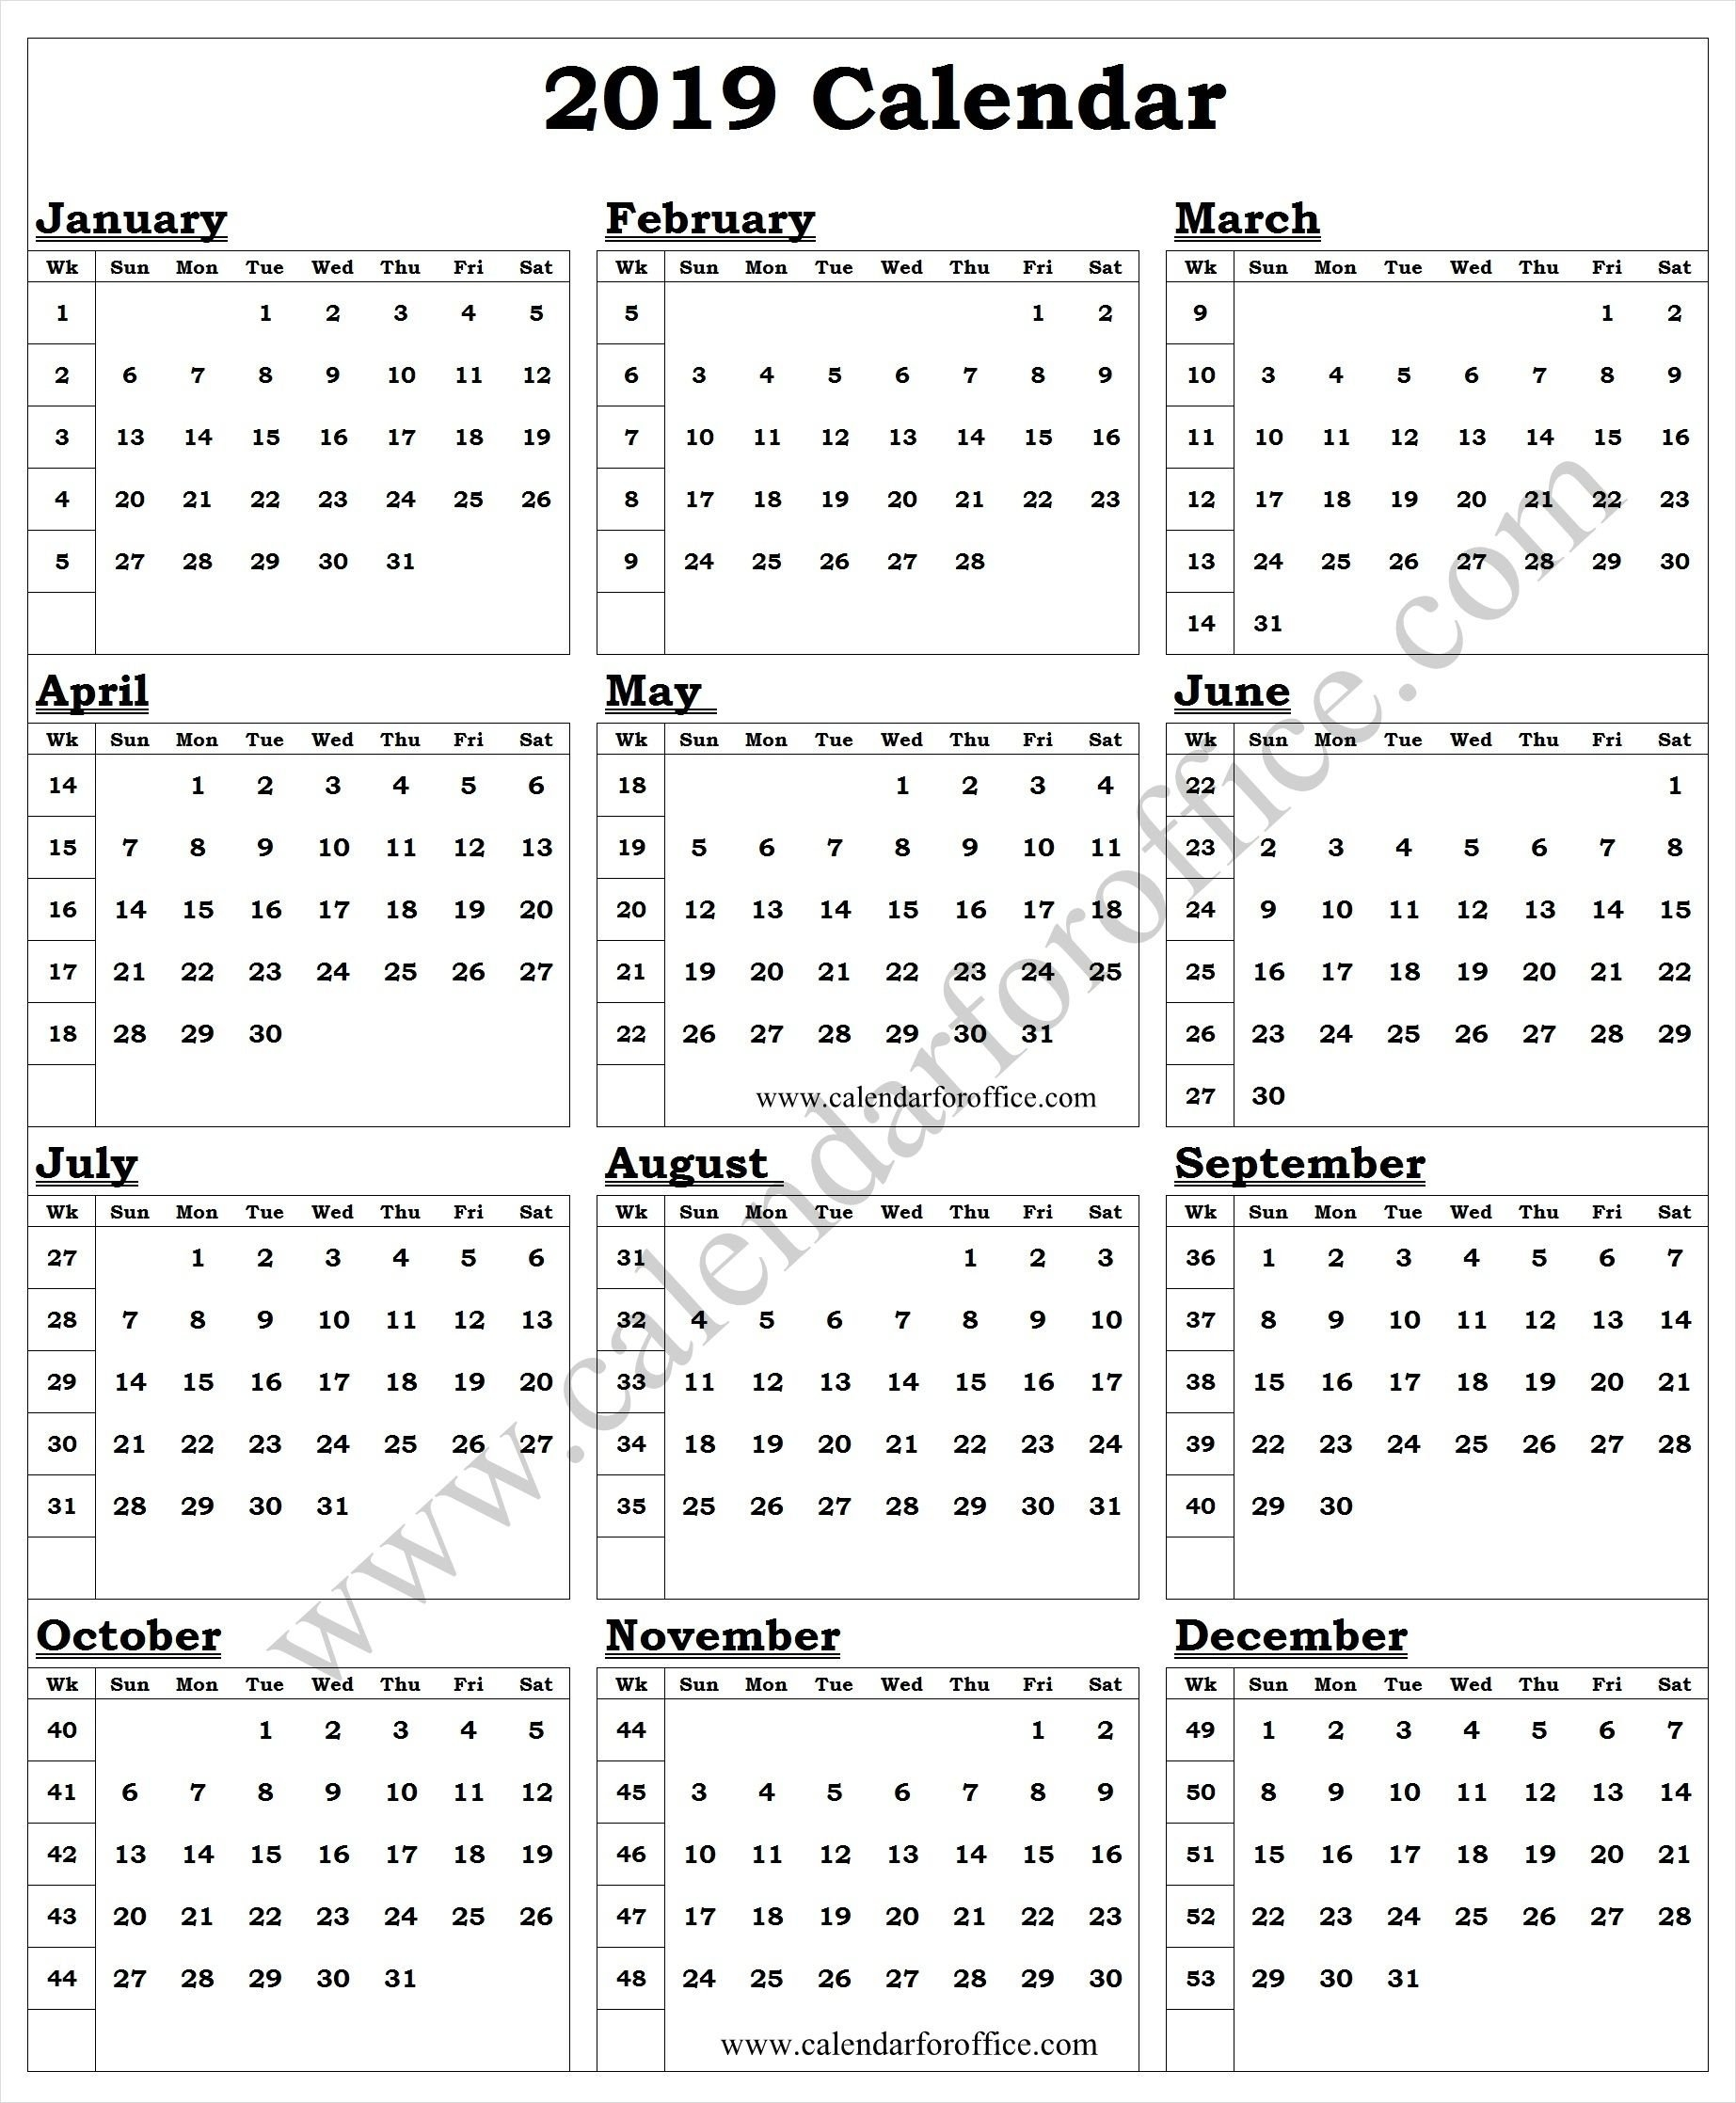 2019 Year Calendar With Week Numbers | 2019 Yearly Calendar Calendar 2019 With Week Numbers